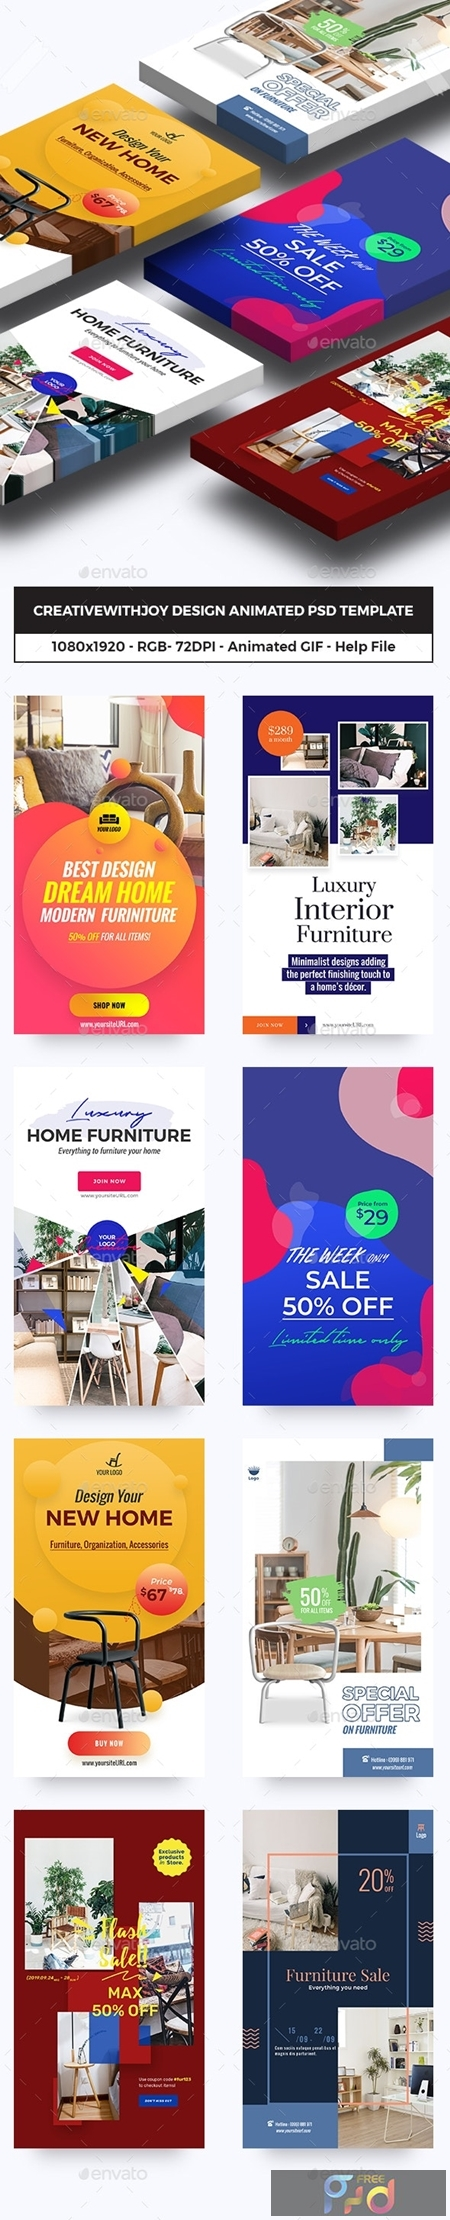 Furniture, Decor Animated GIFs Instagram Stories 23834805 1